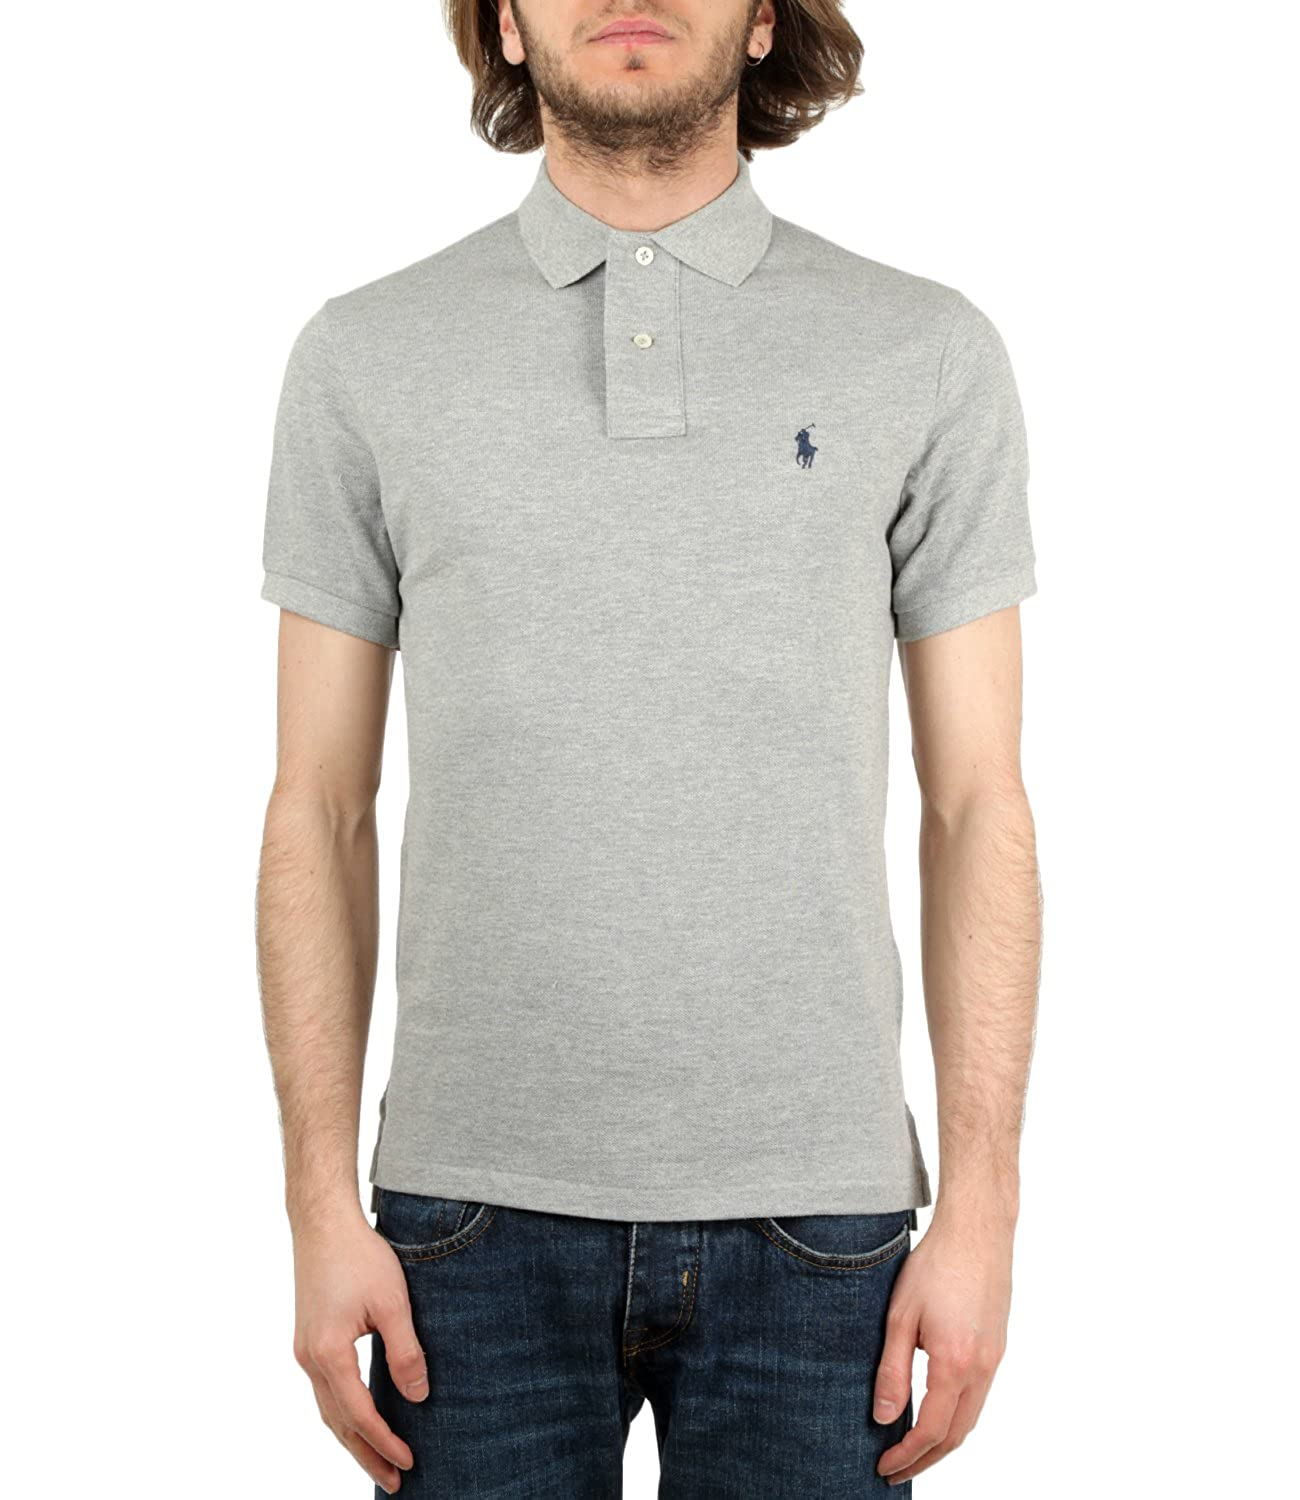 Polo Ralph Lauren Polo in Piquet Slim-Fit Uomo Mod. 710680784 XL ...